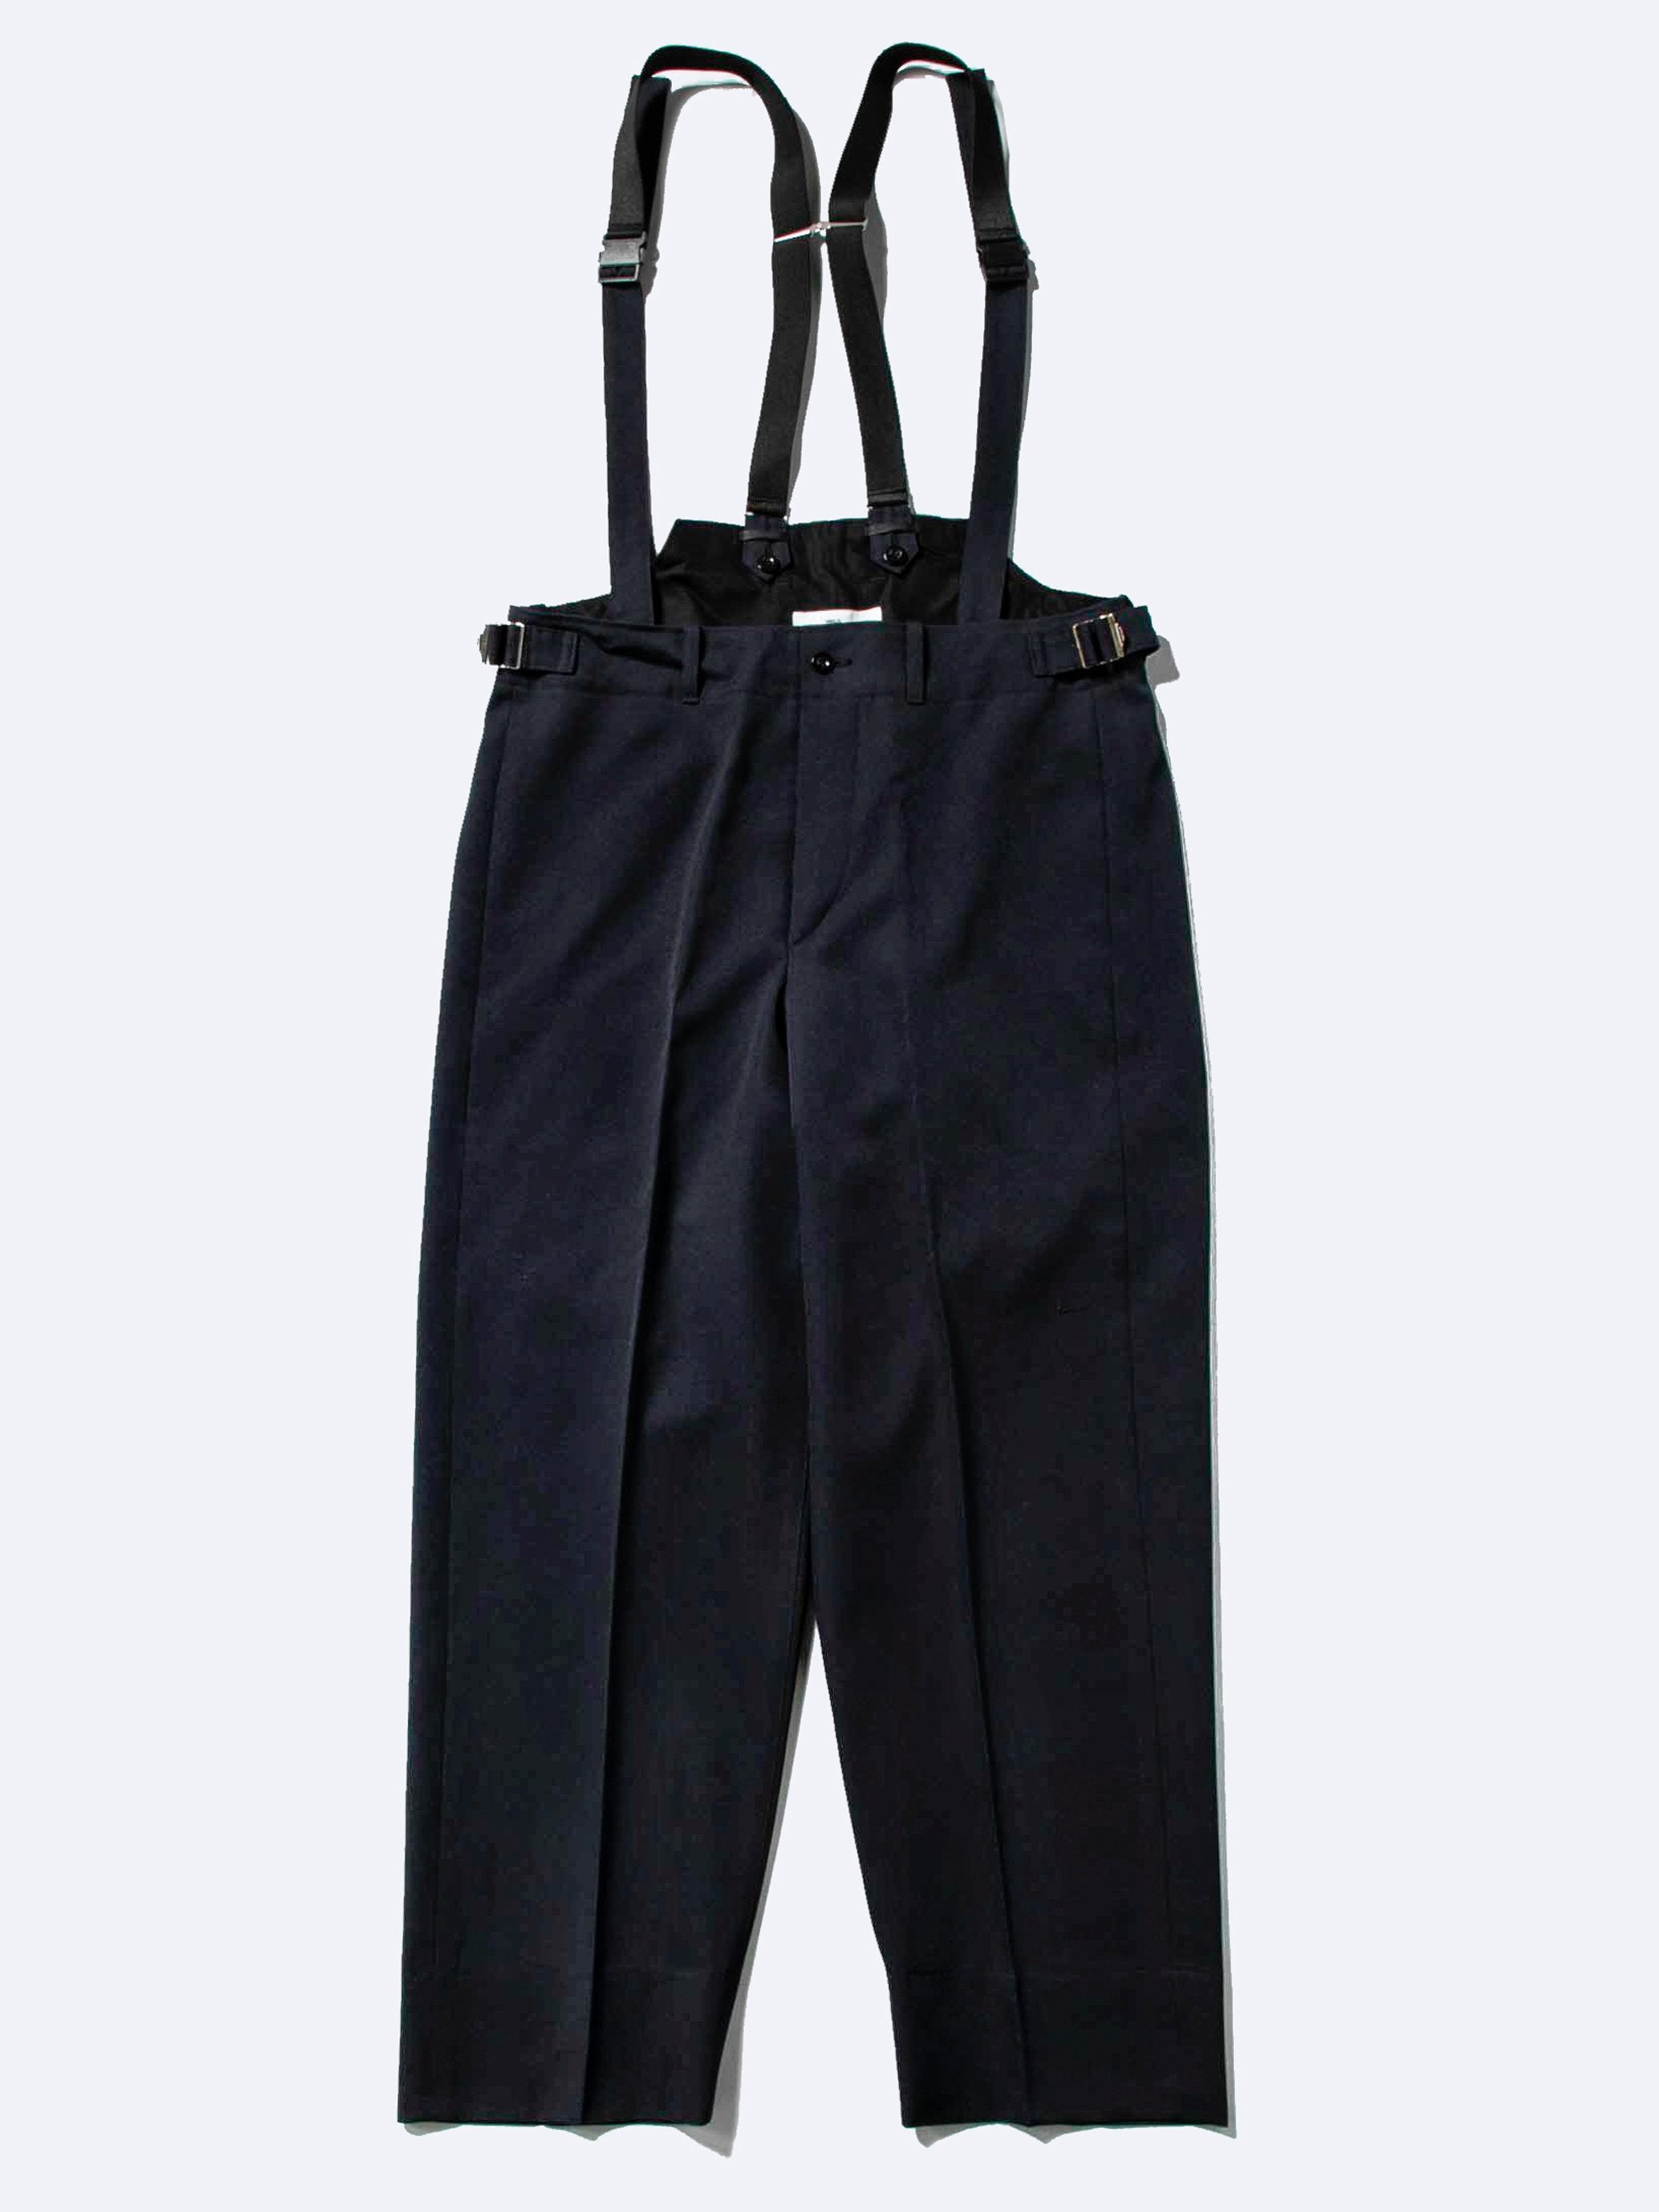 Navy Suspender Pants 1